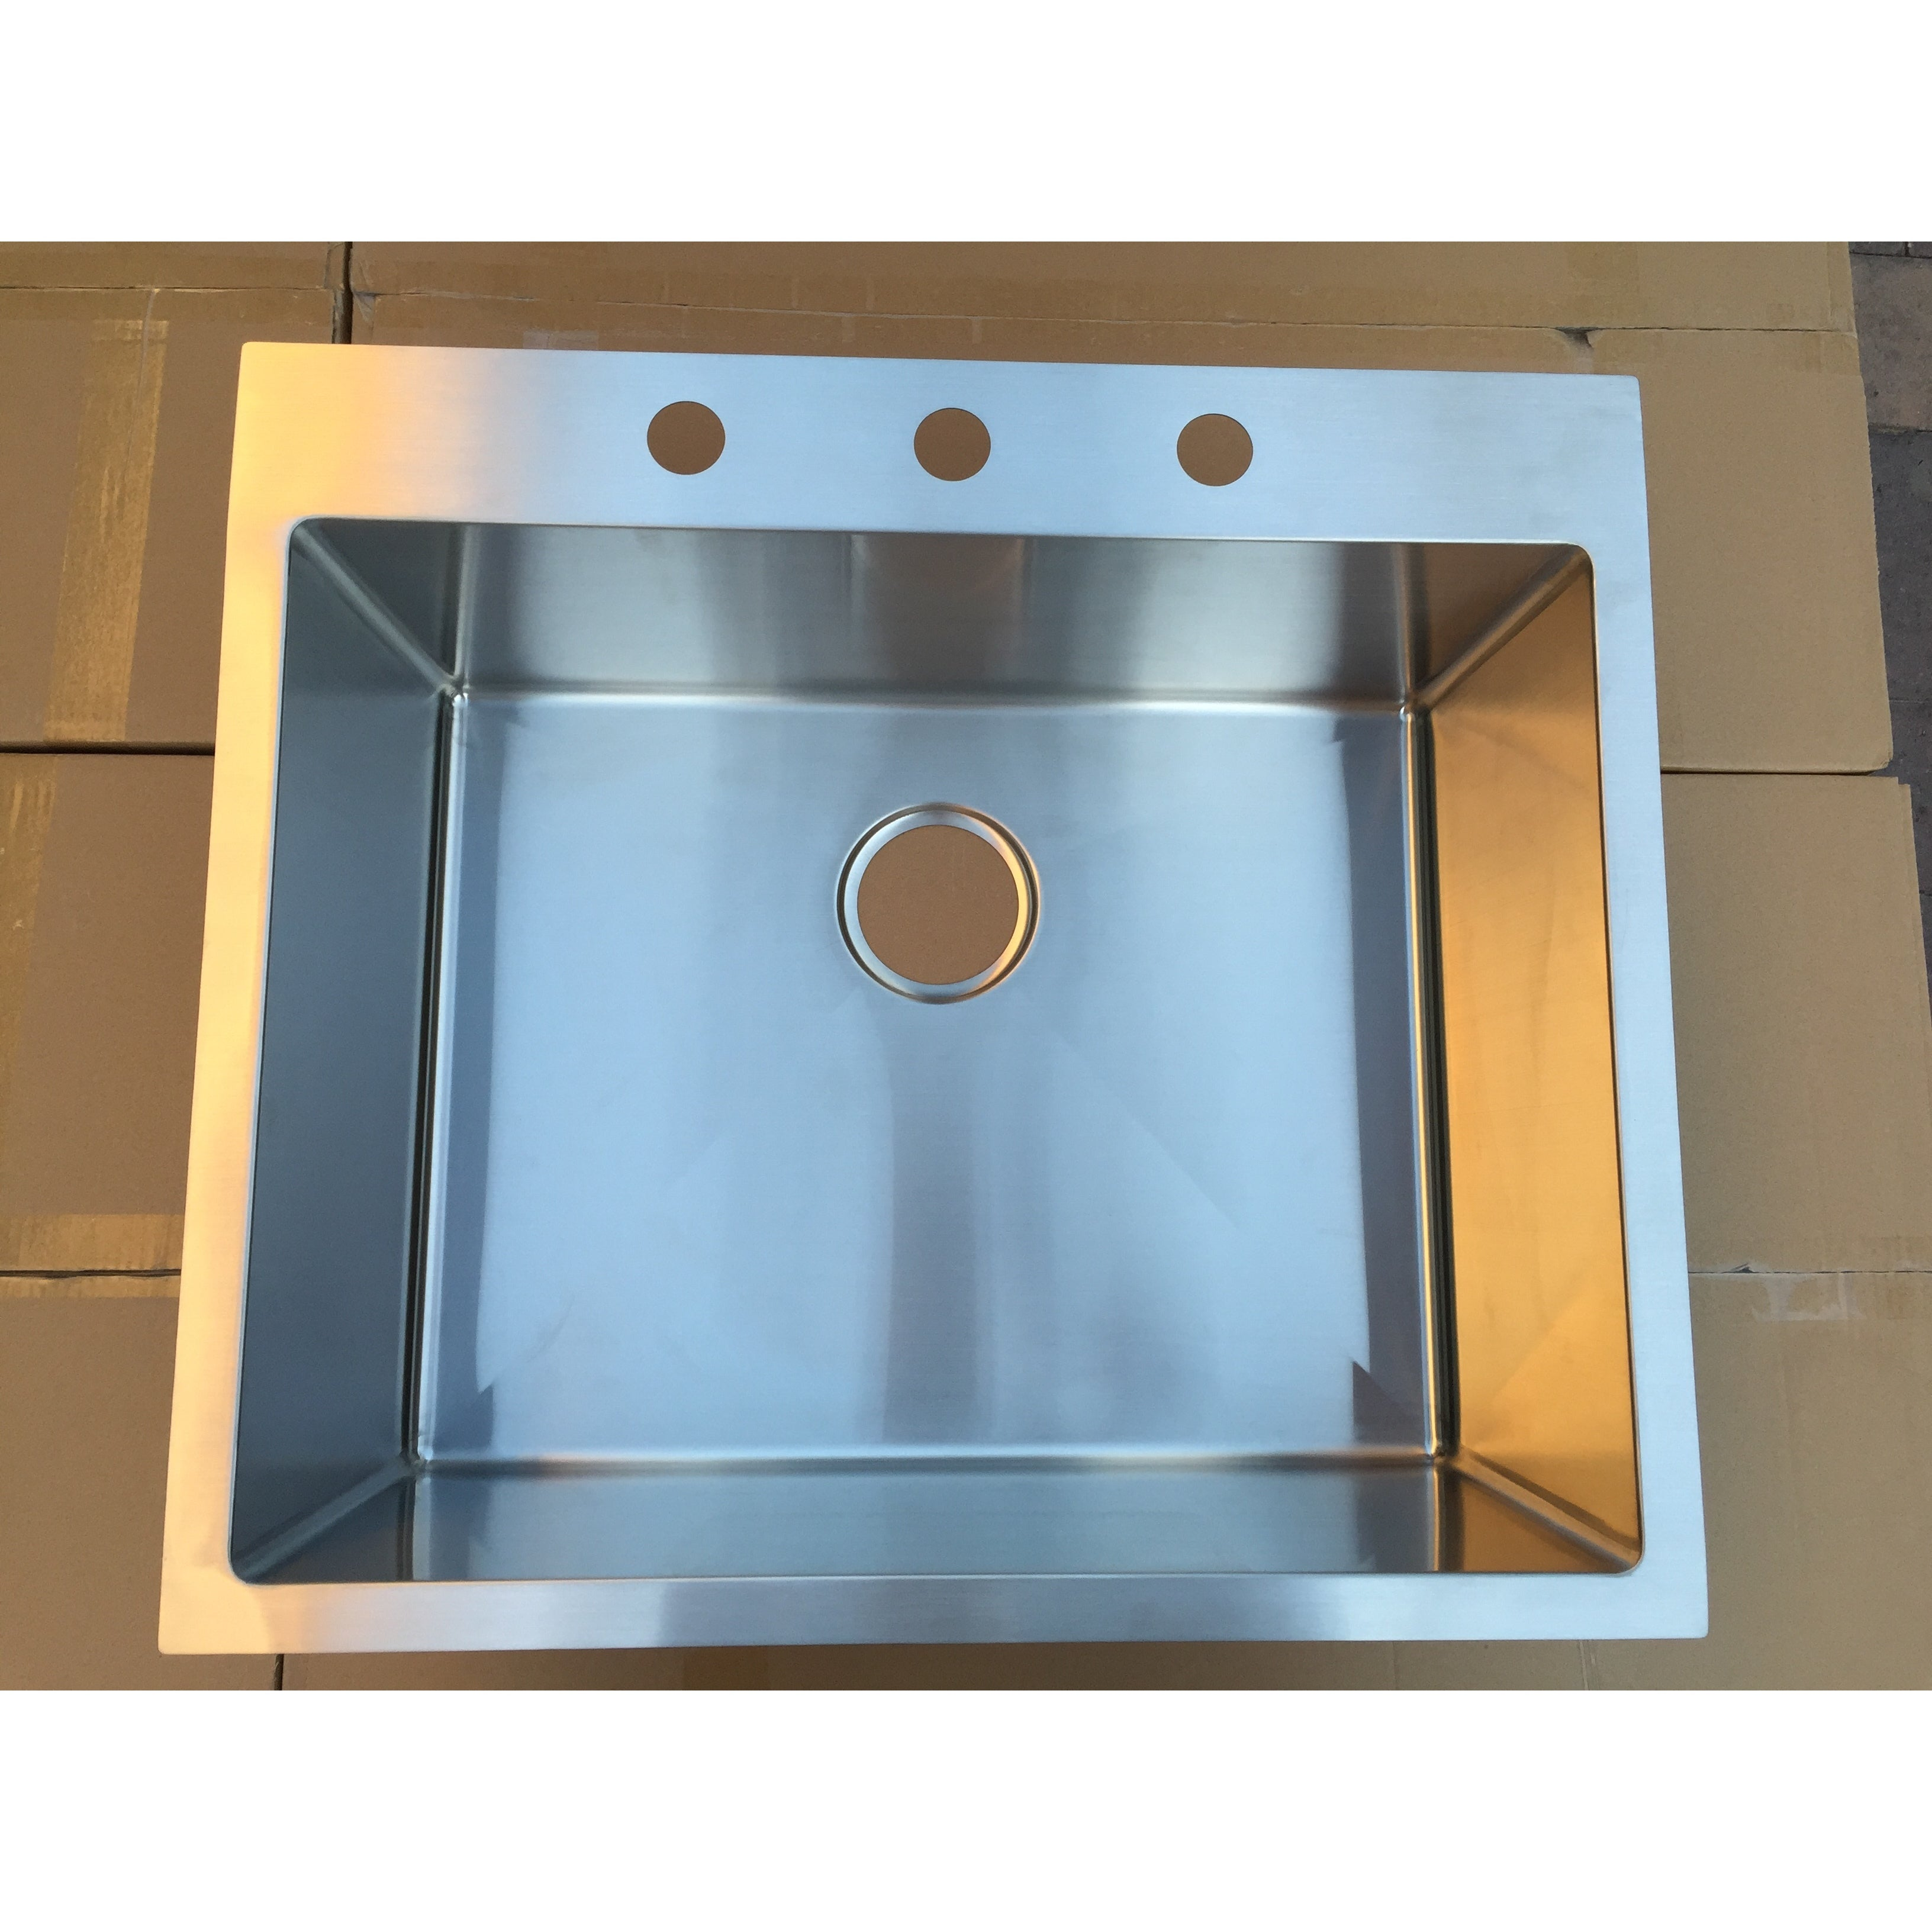 Shop Starstar 304 Stainless Steel 25-inch Single-bowl Top-mount ...